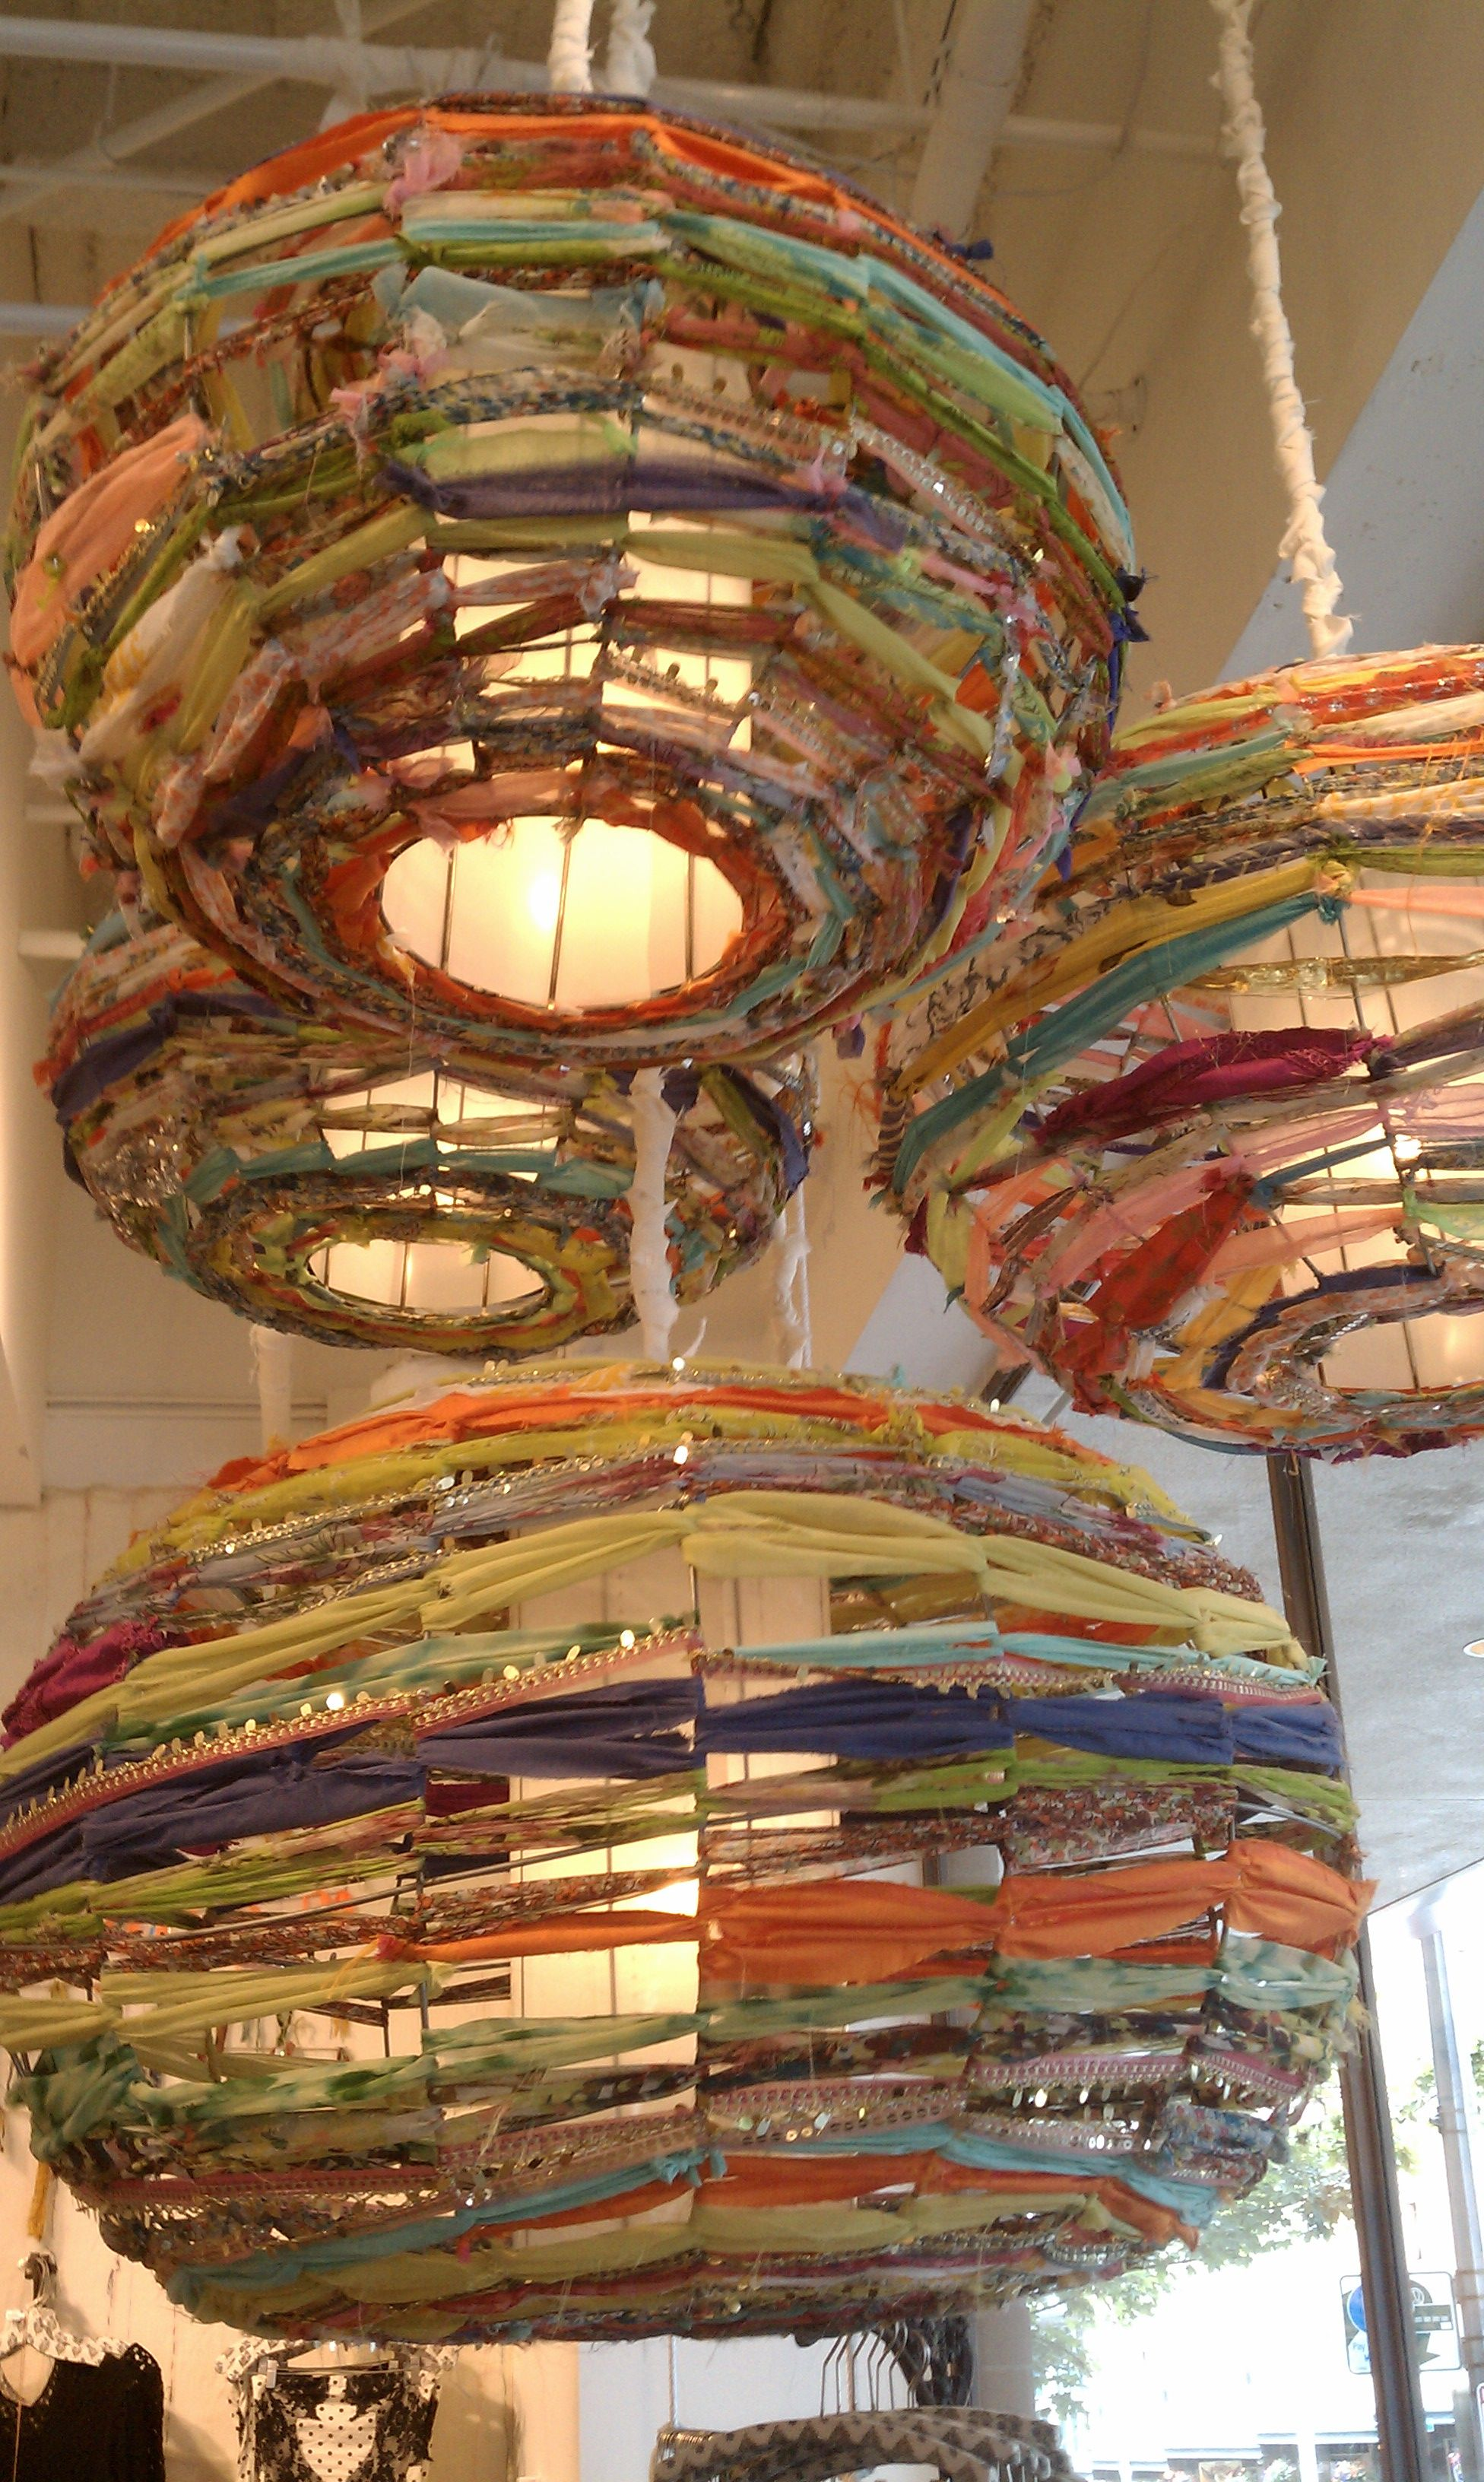 Weave fabric lanterns Katherine, I can totally see these in